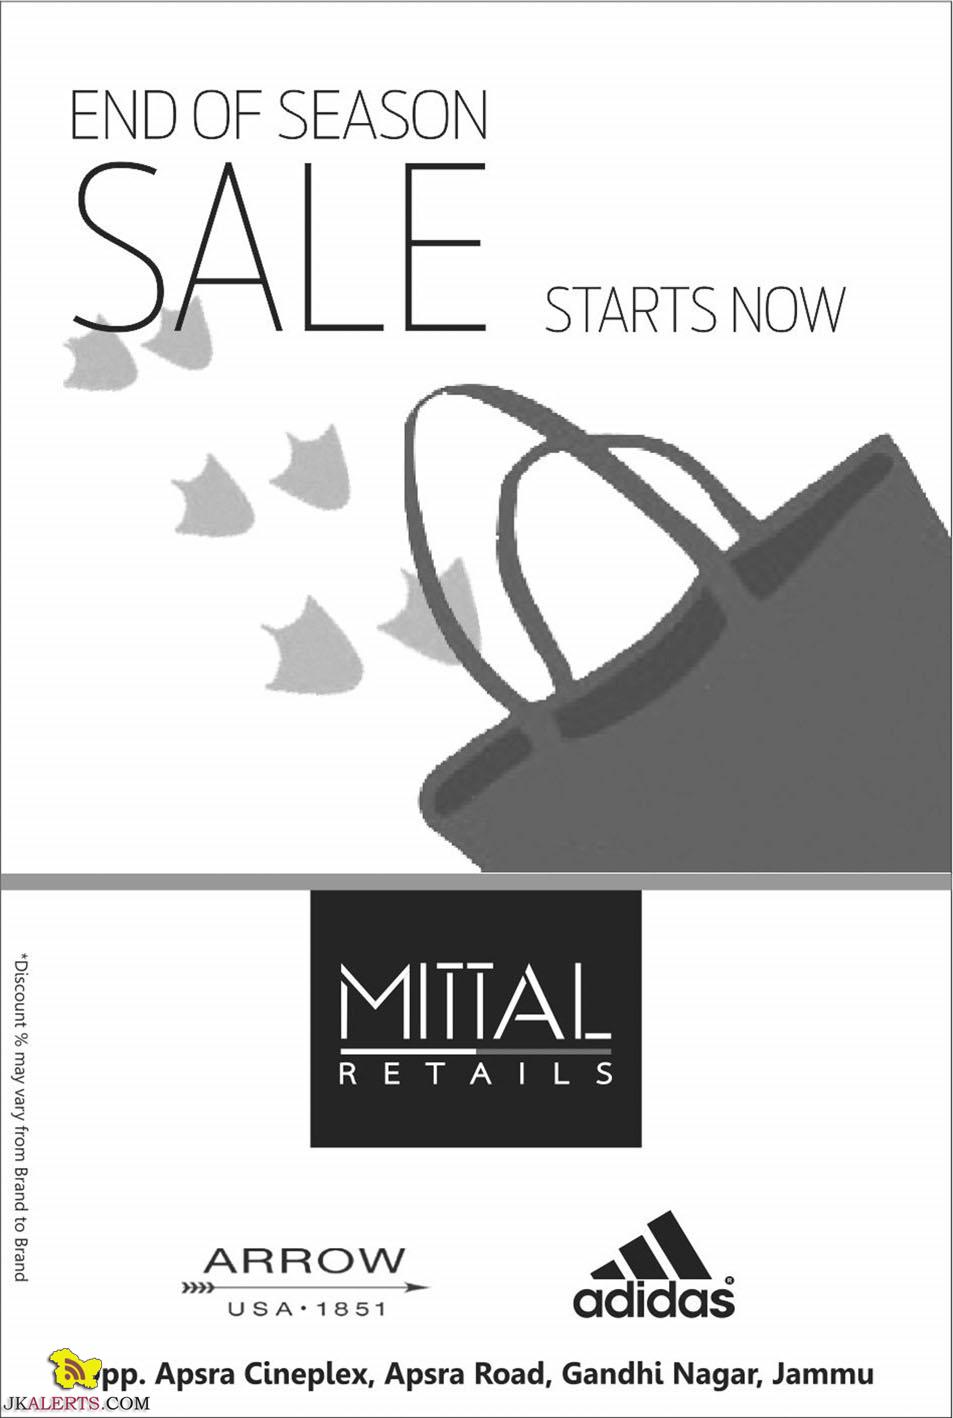 End of Season Sale Addidas, Arrow and other Big Brands in Jammu Mittal Retails